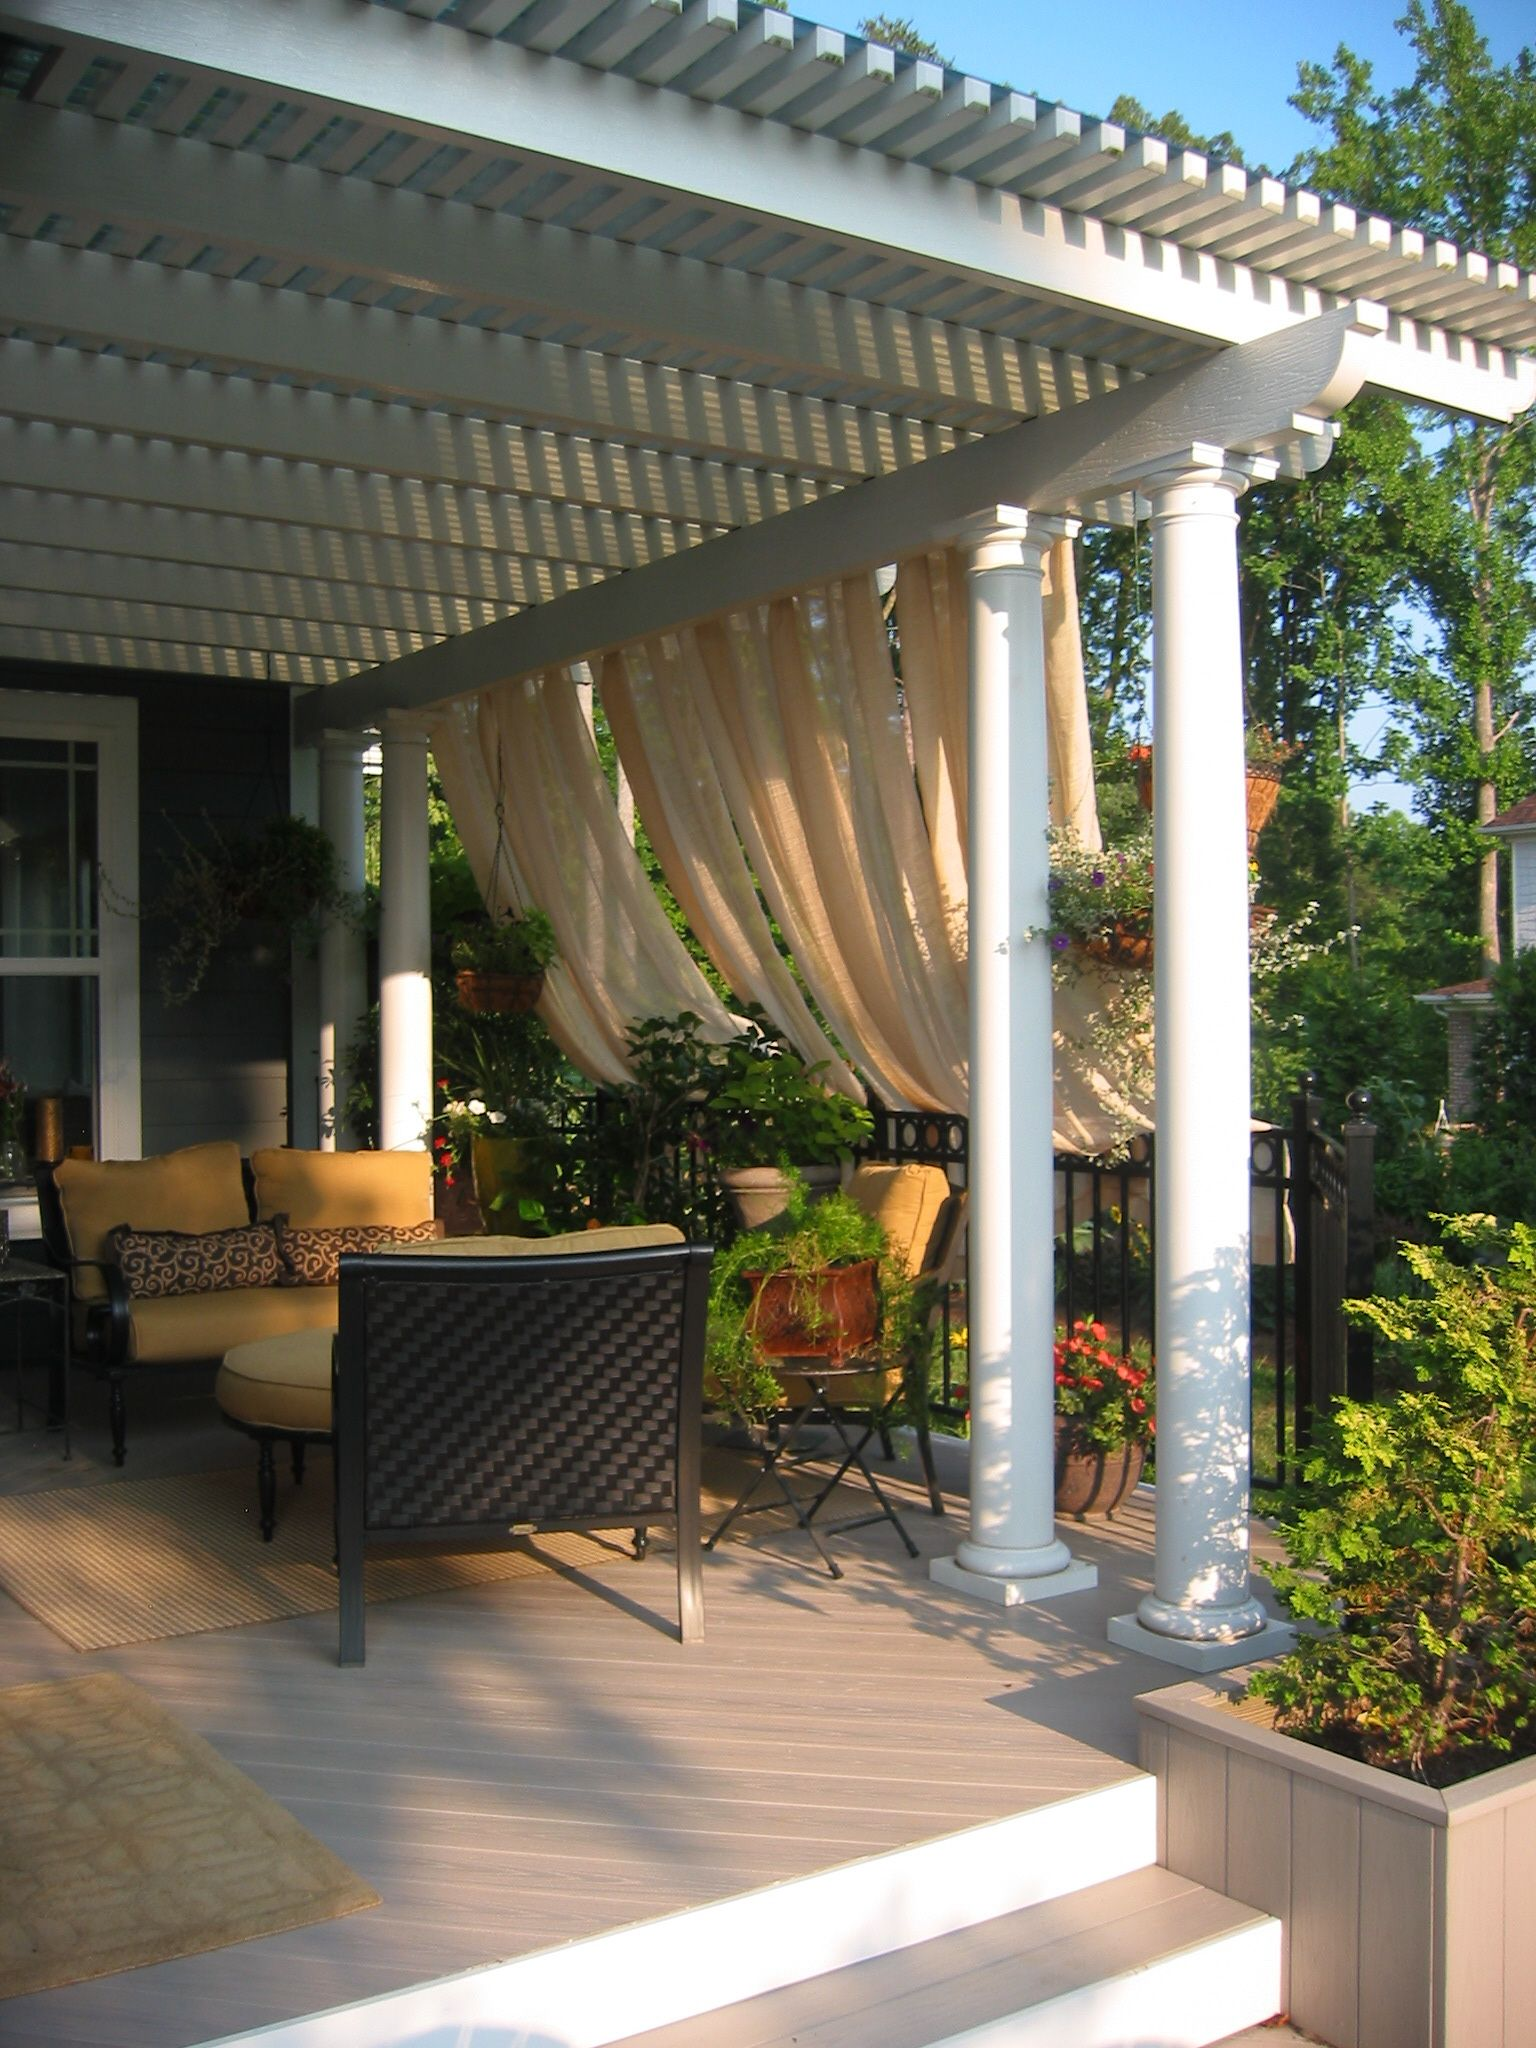 Pergola with polycarbonate roof and curtains creates an intimate outdoor space archadeck - Pergola with roof ...